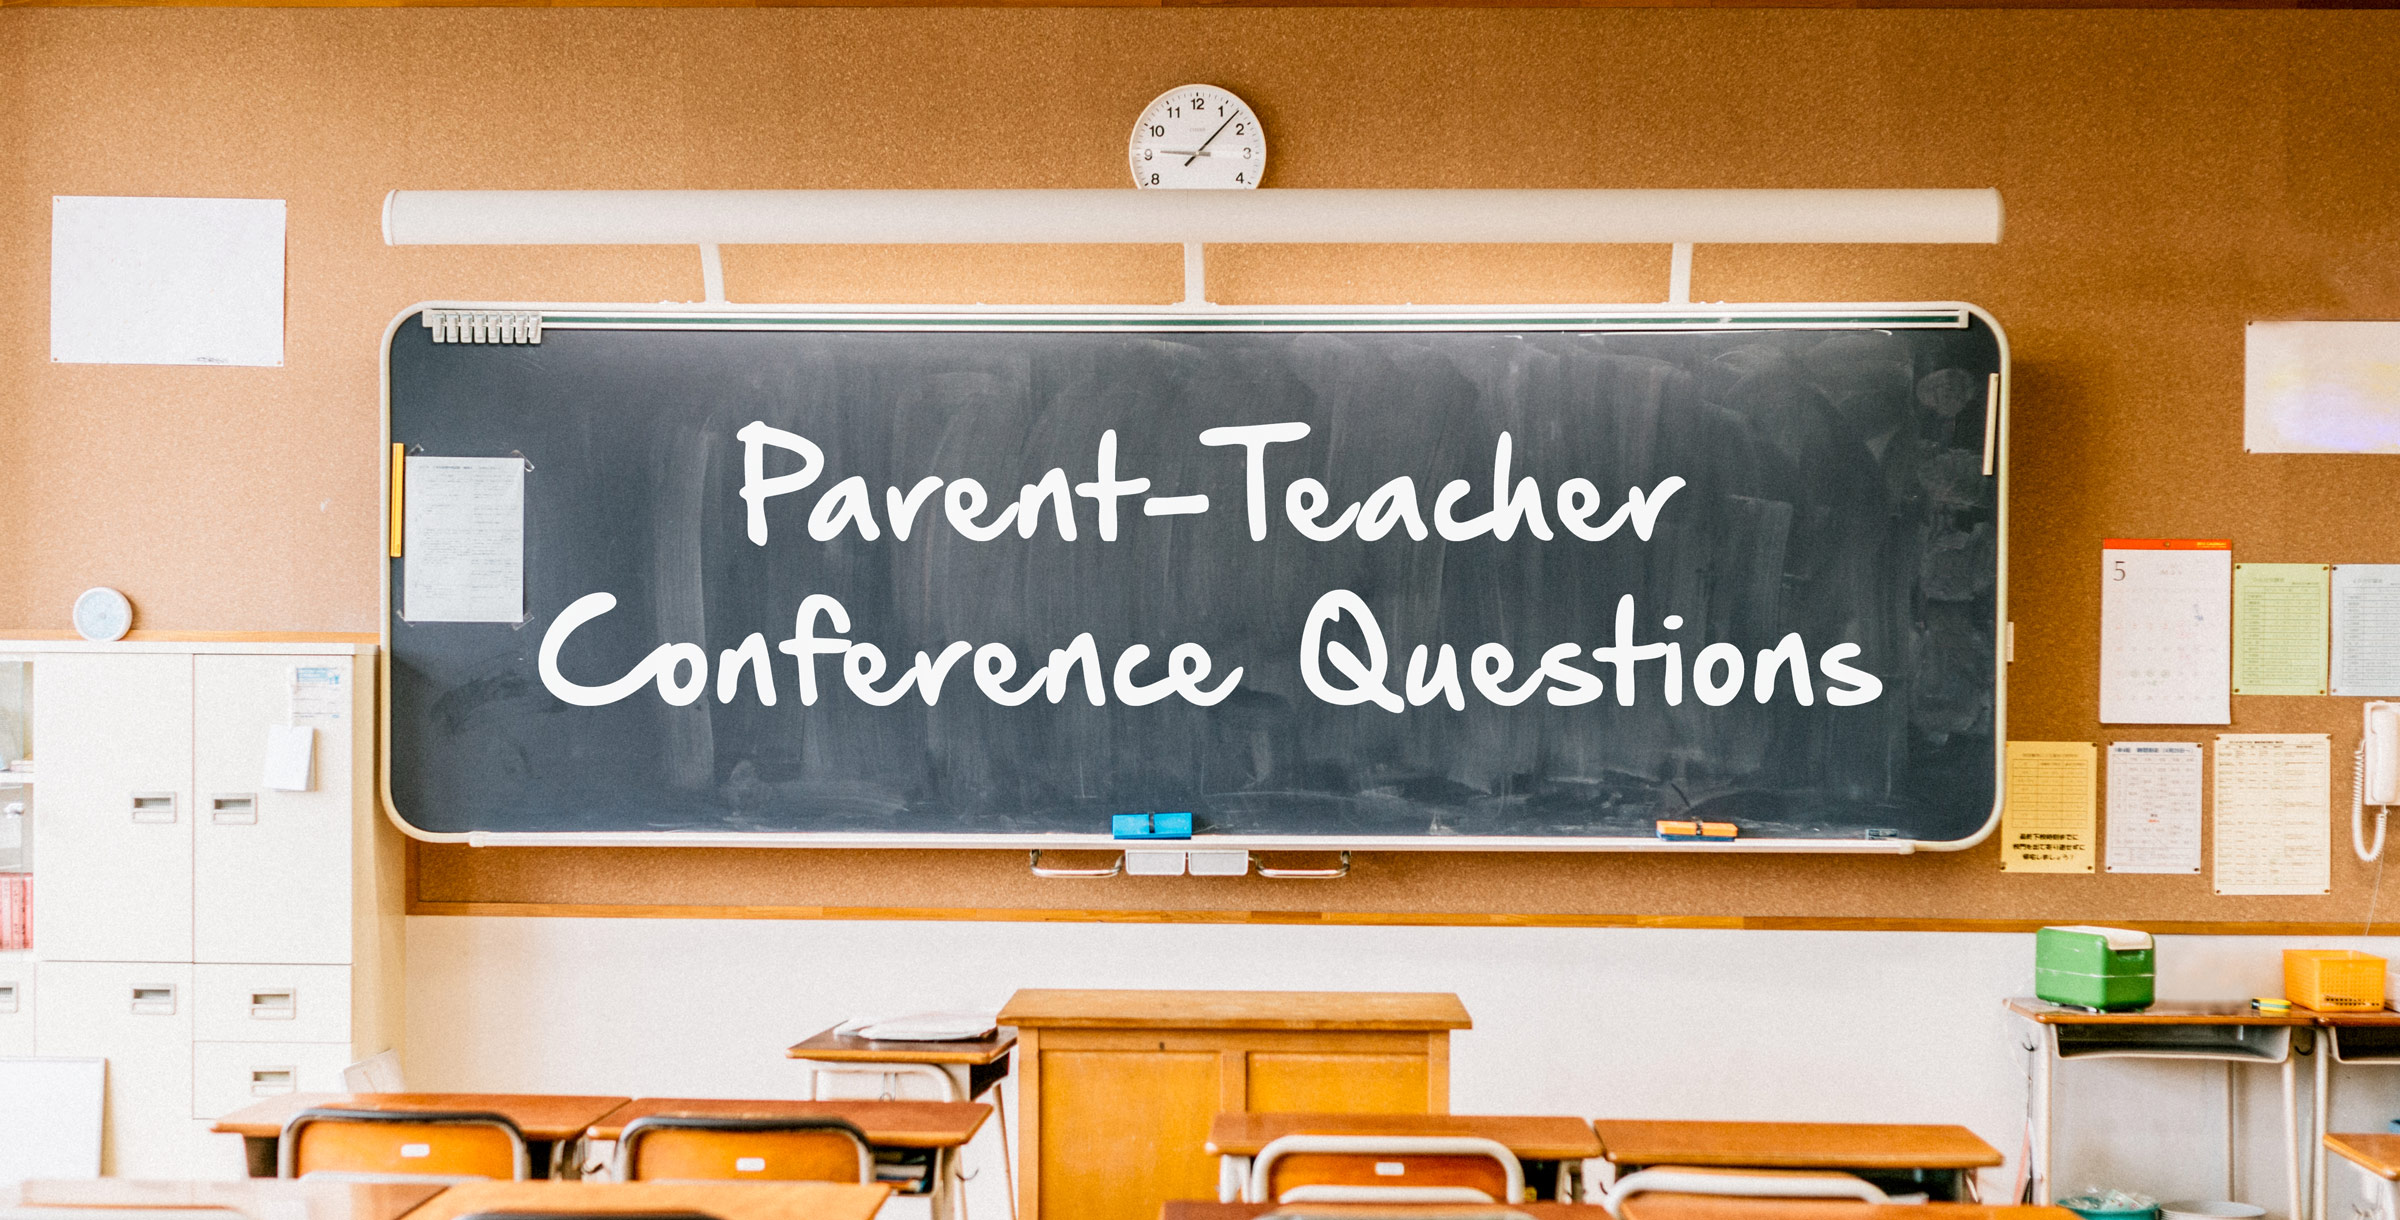 Parent-Teacher Conference Questions